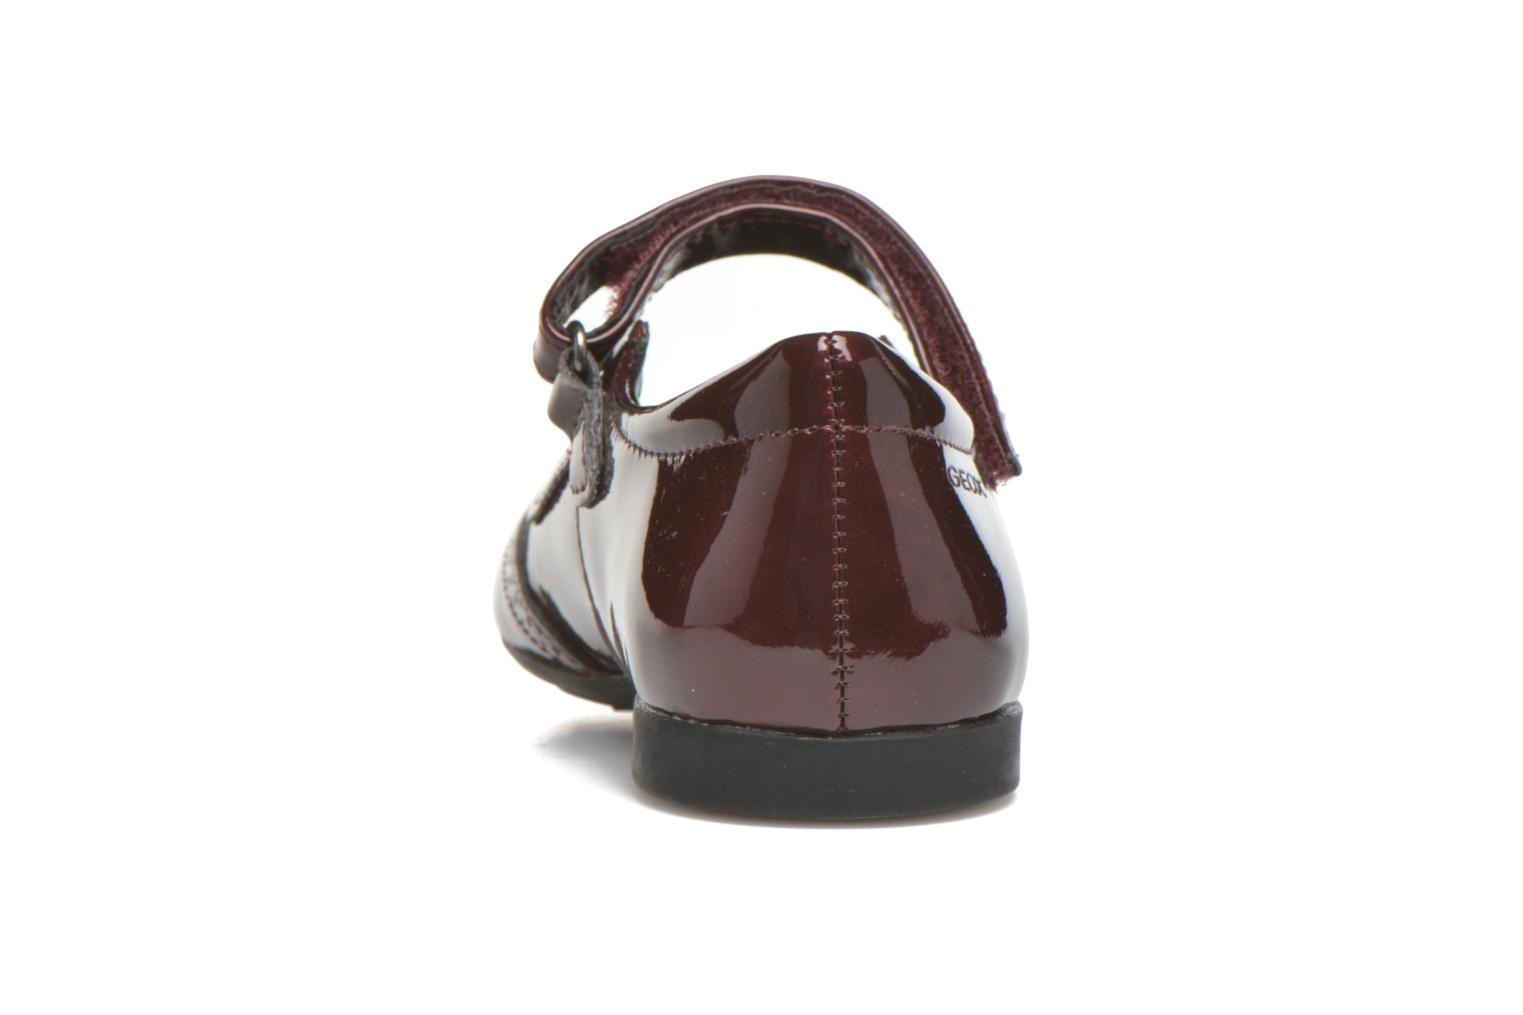 JR Plie' J5455F Bordeaux